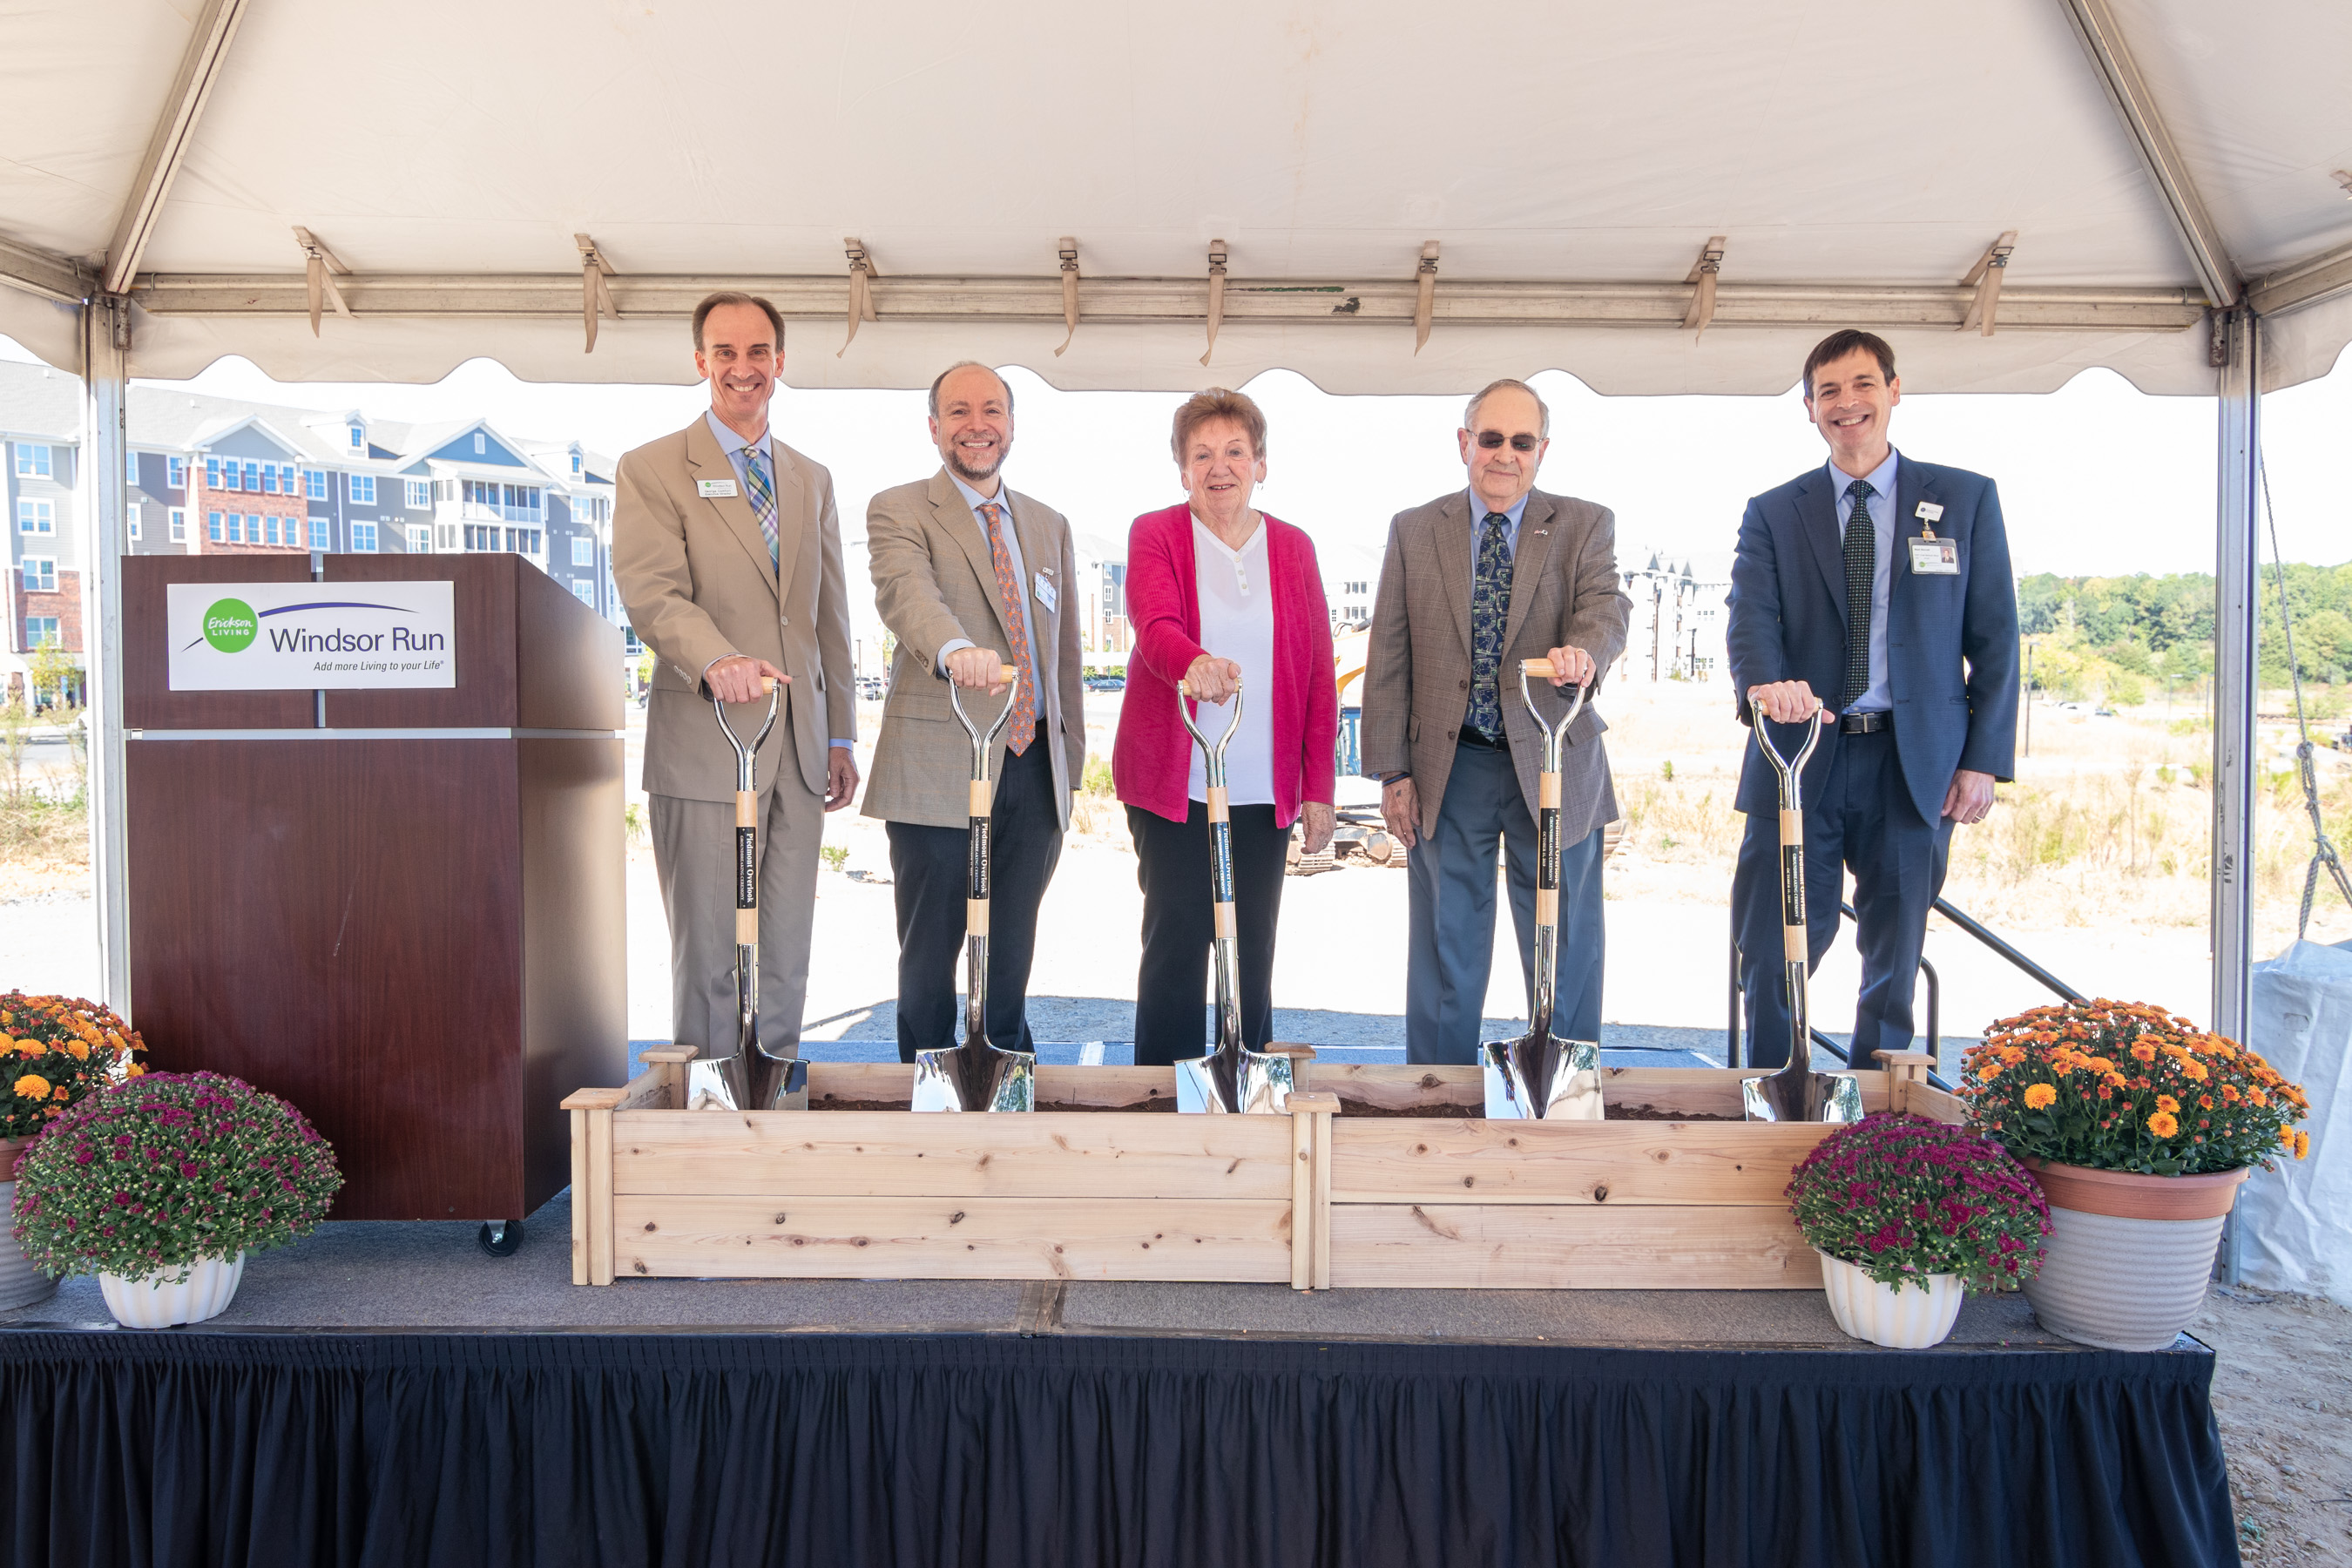 Residents, employees and corporate partners are pictured during the groundbreaking ceremony of a new continuing care neighborhood at Windsor Run.